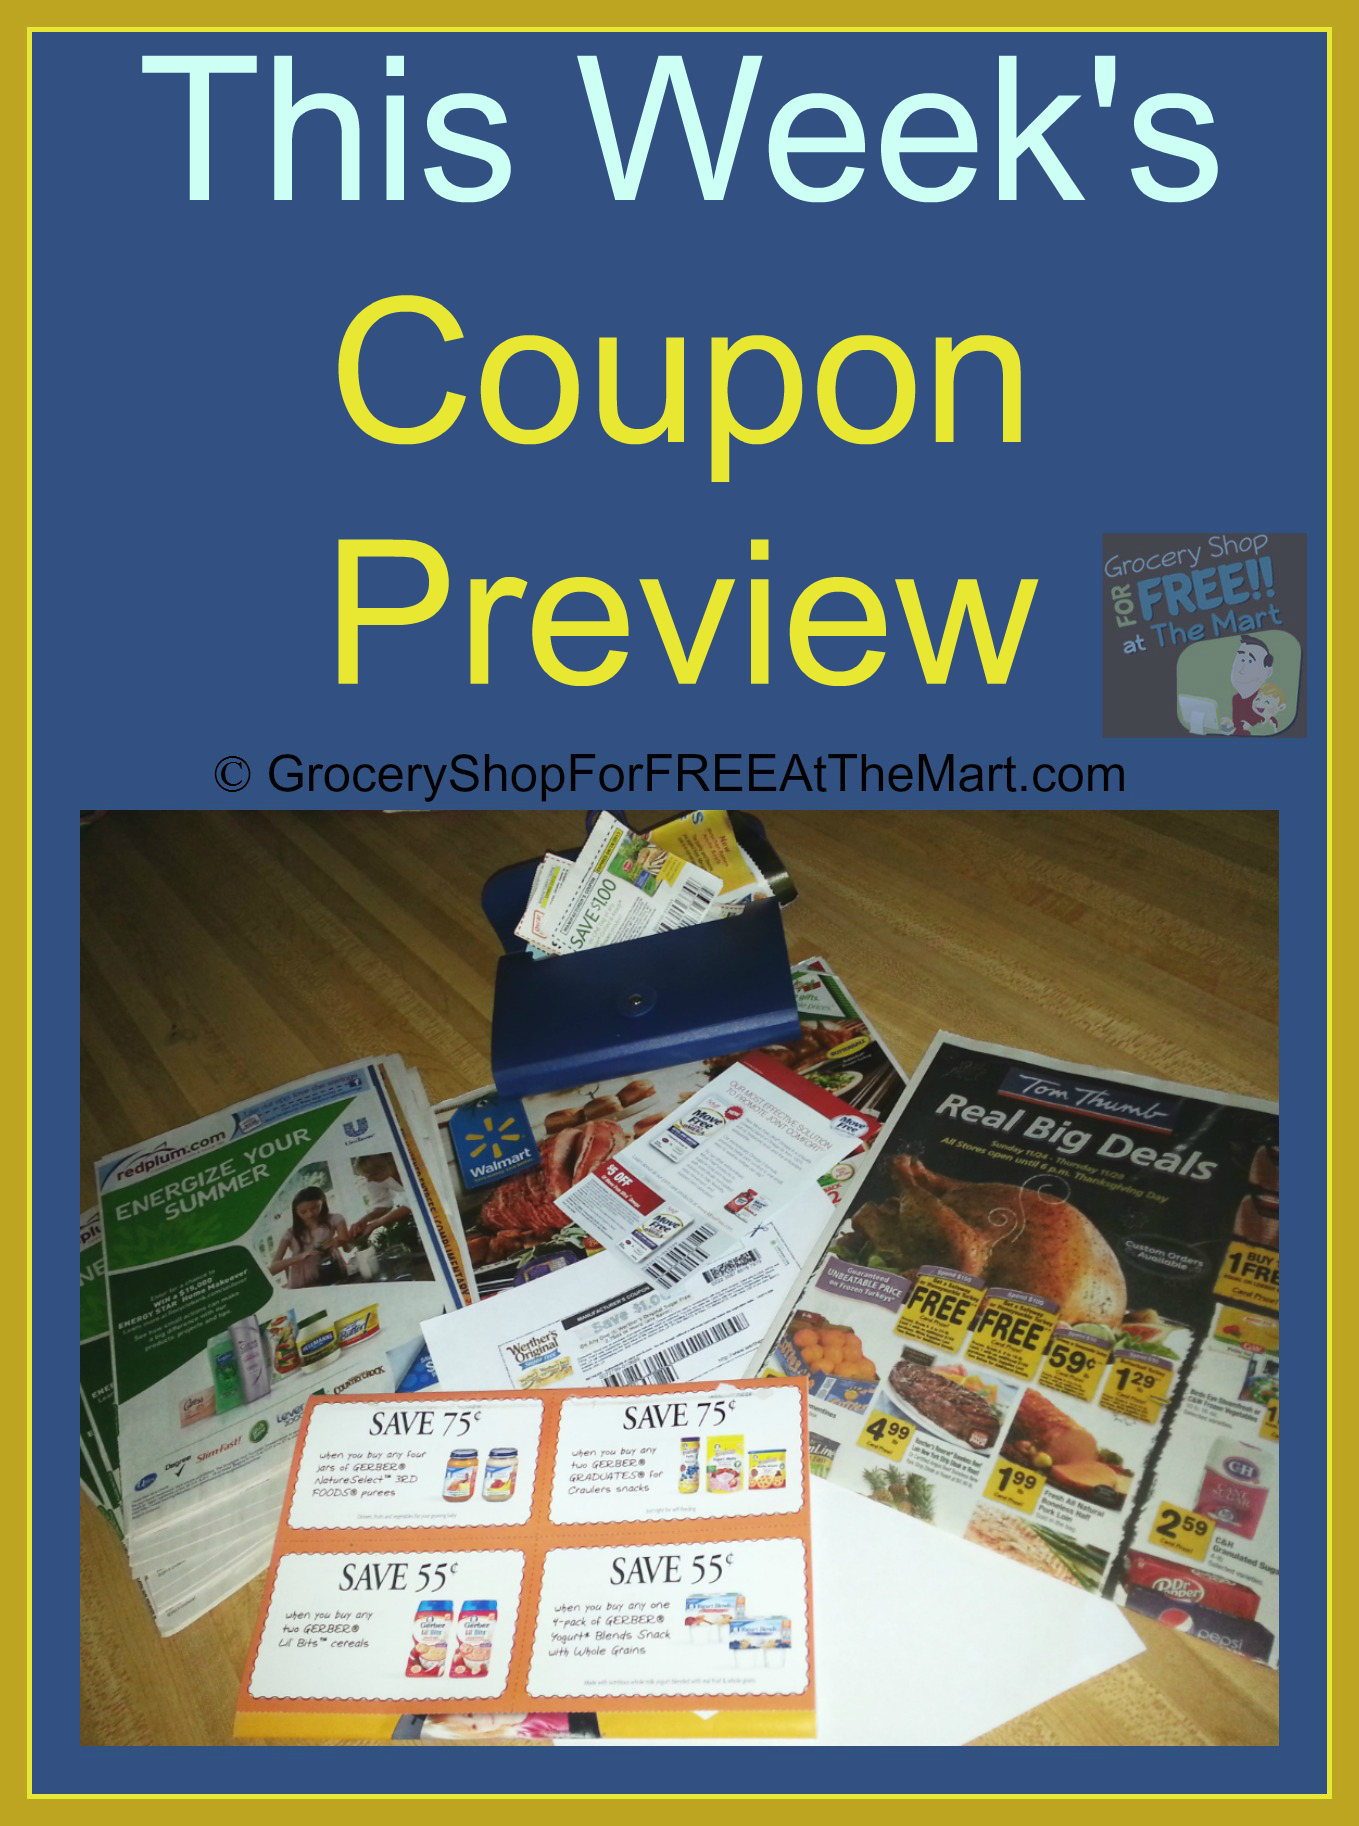 9/13 Sunday Coupon Preview: Great Deals on Oscar Mayer Products, Aspirin, Rice and More!